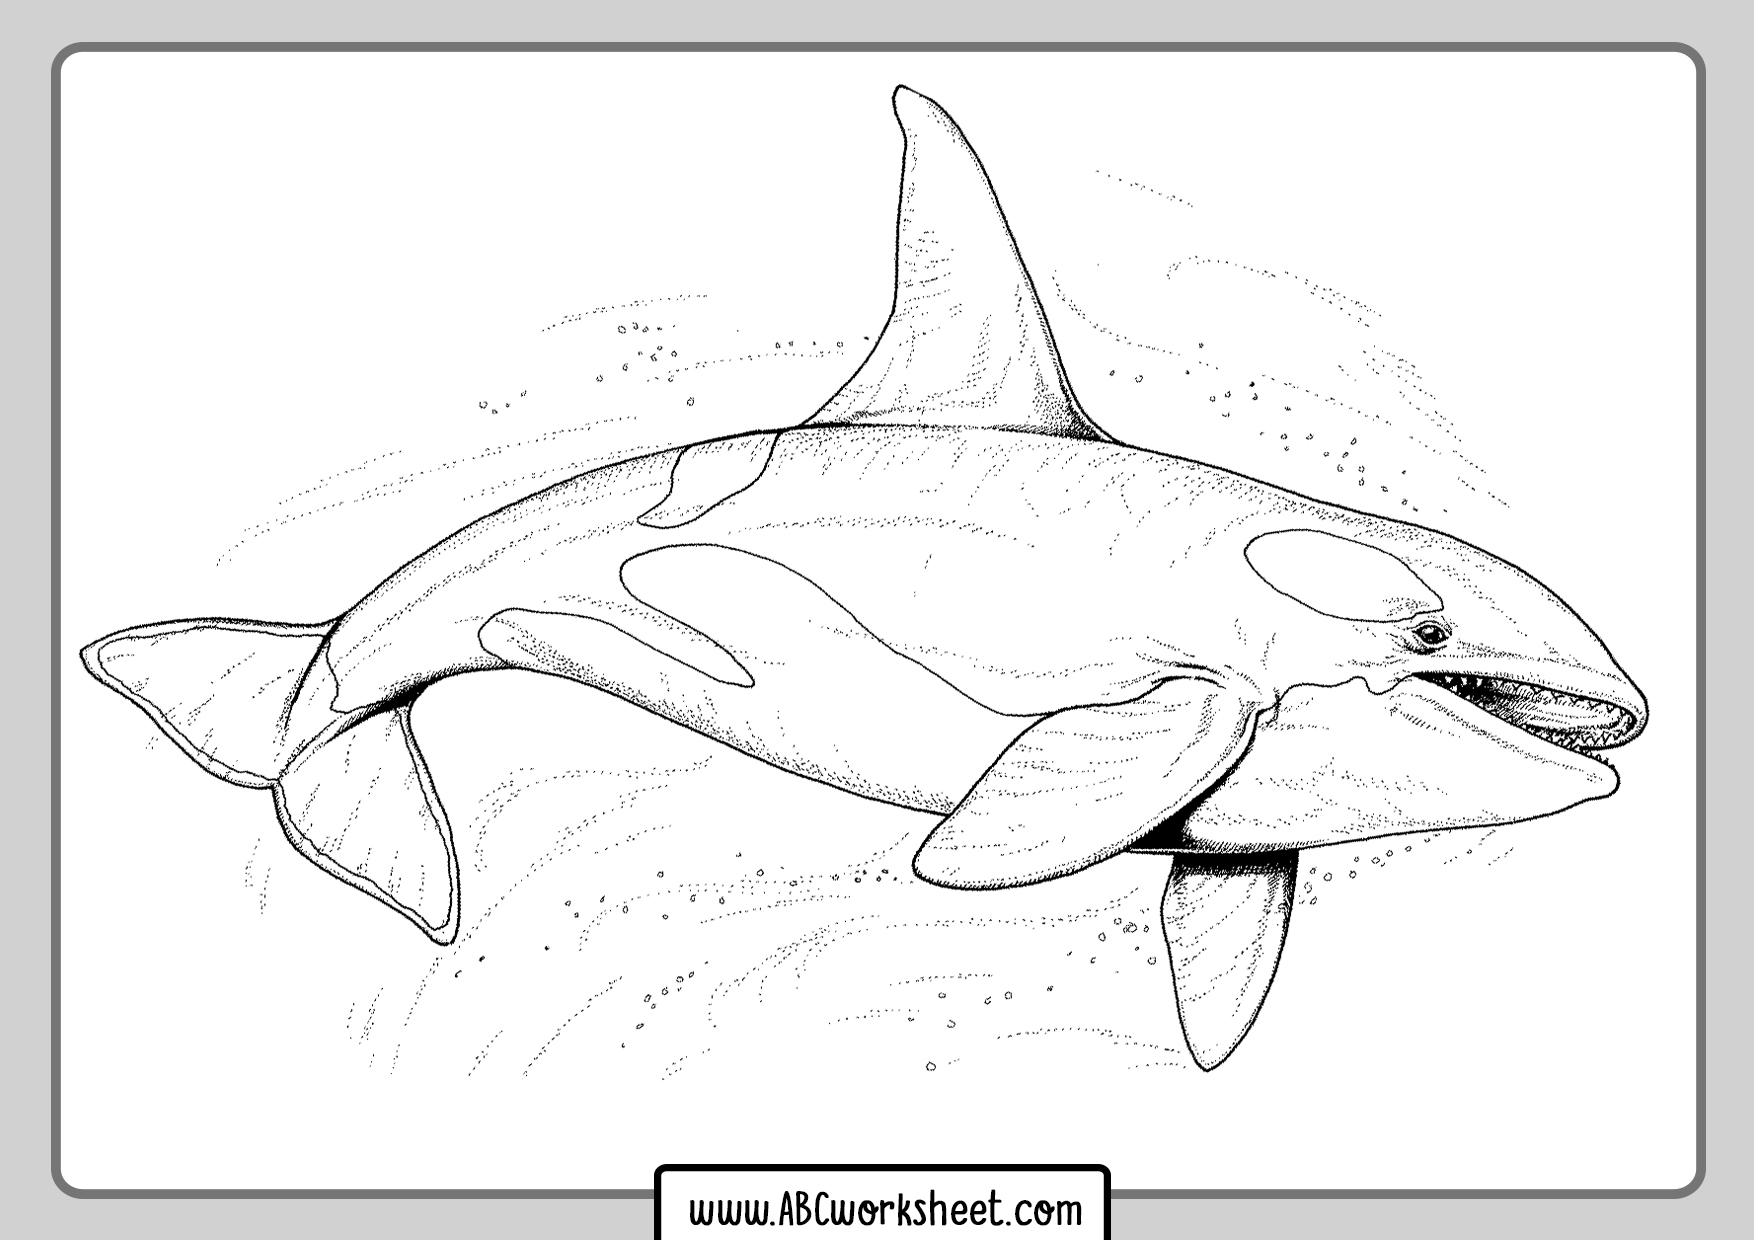 Orca Killer Whale For Coloring